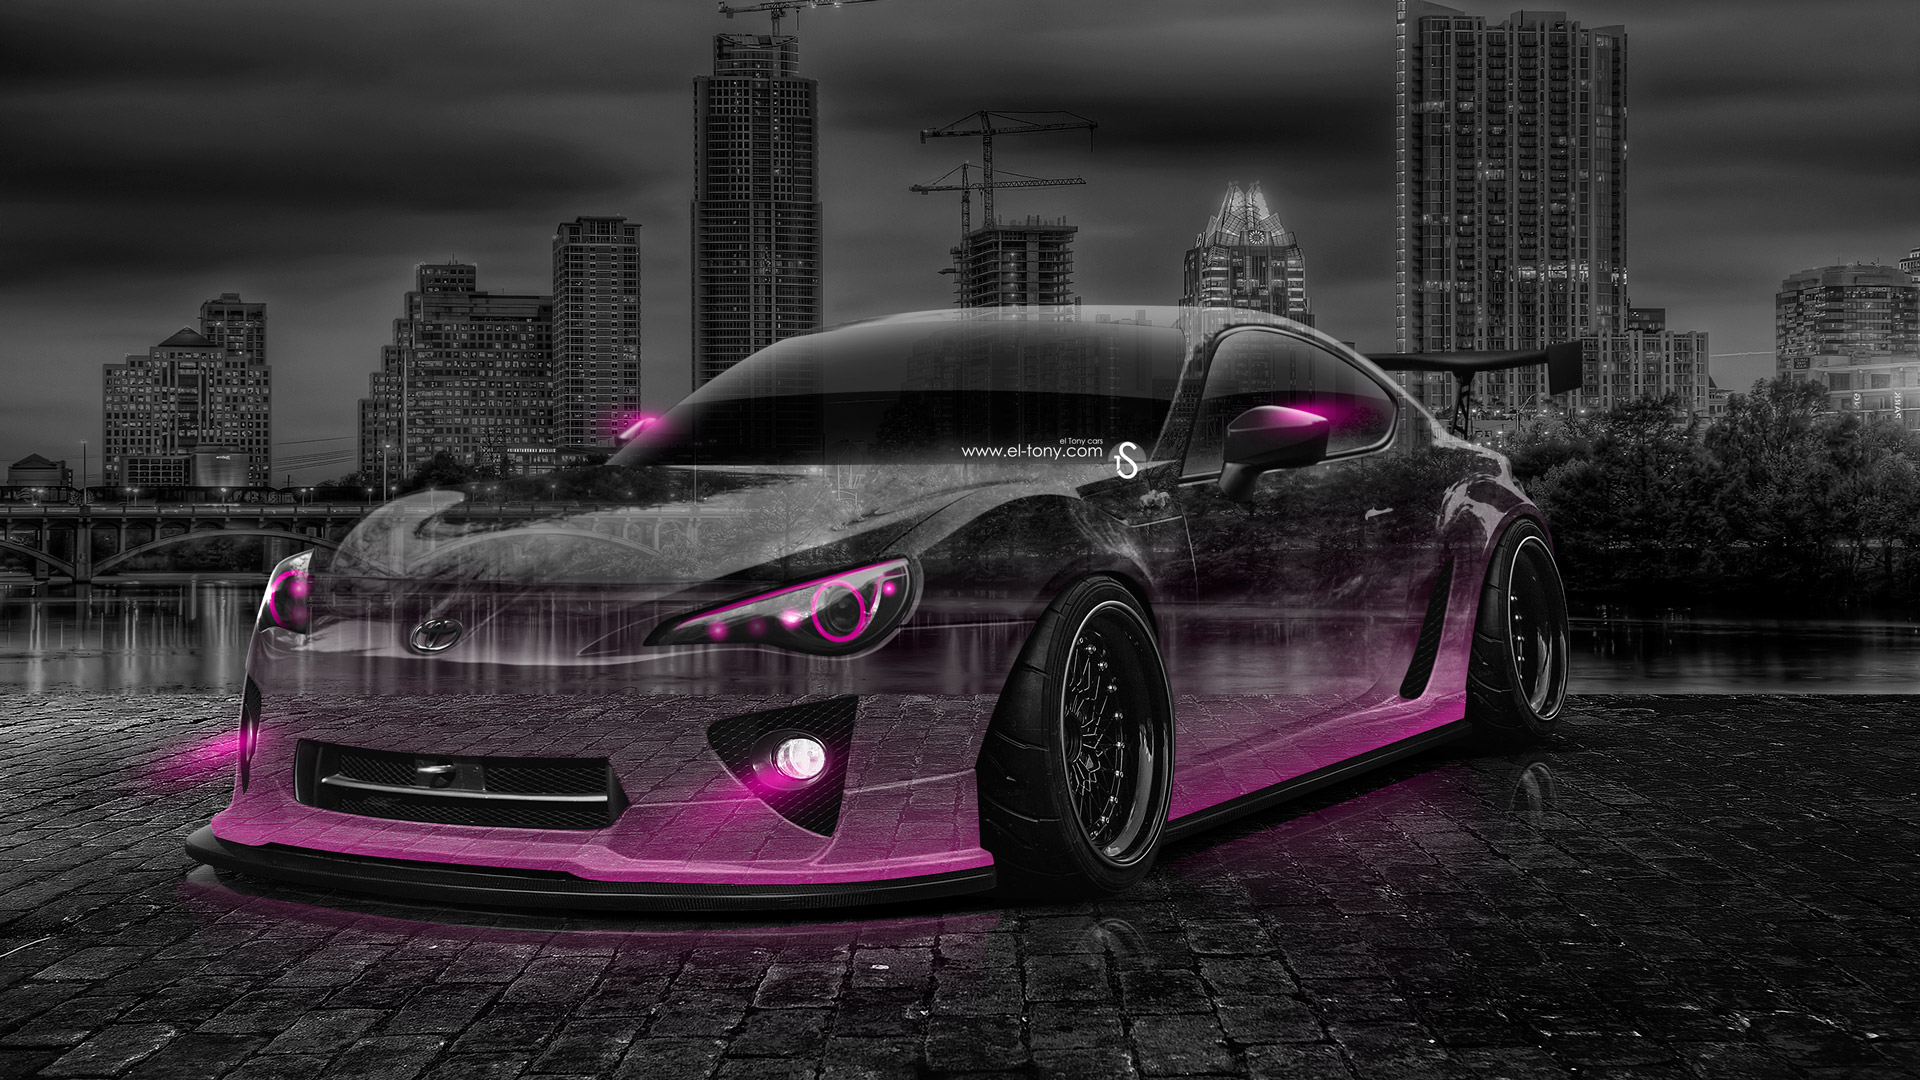 Charmant Wallpapers Toyota Gt86 Jdm Crystal City Car 2014